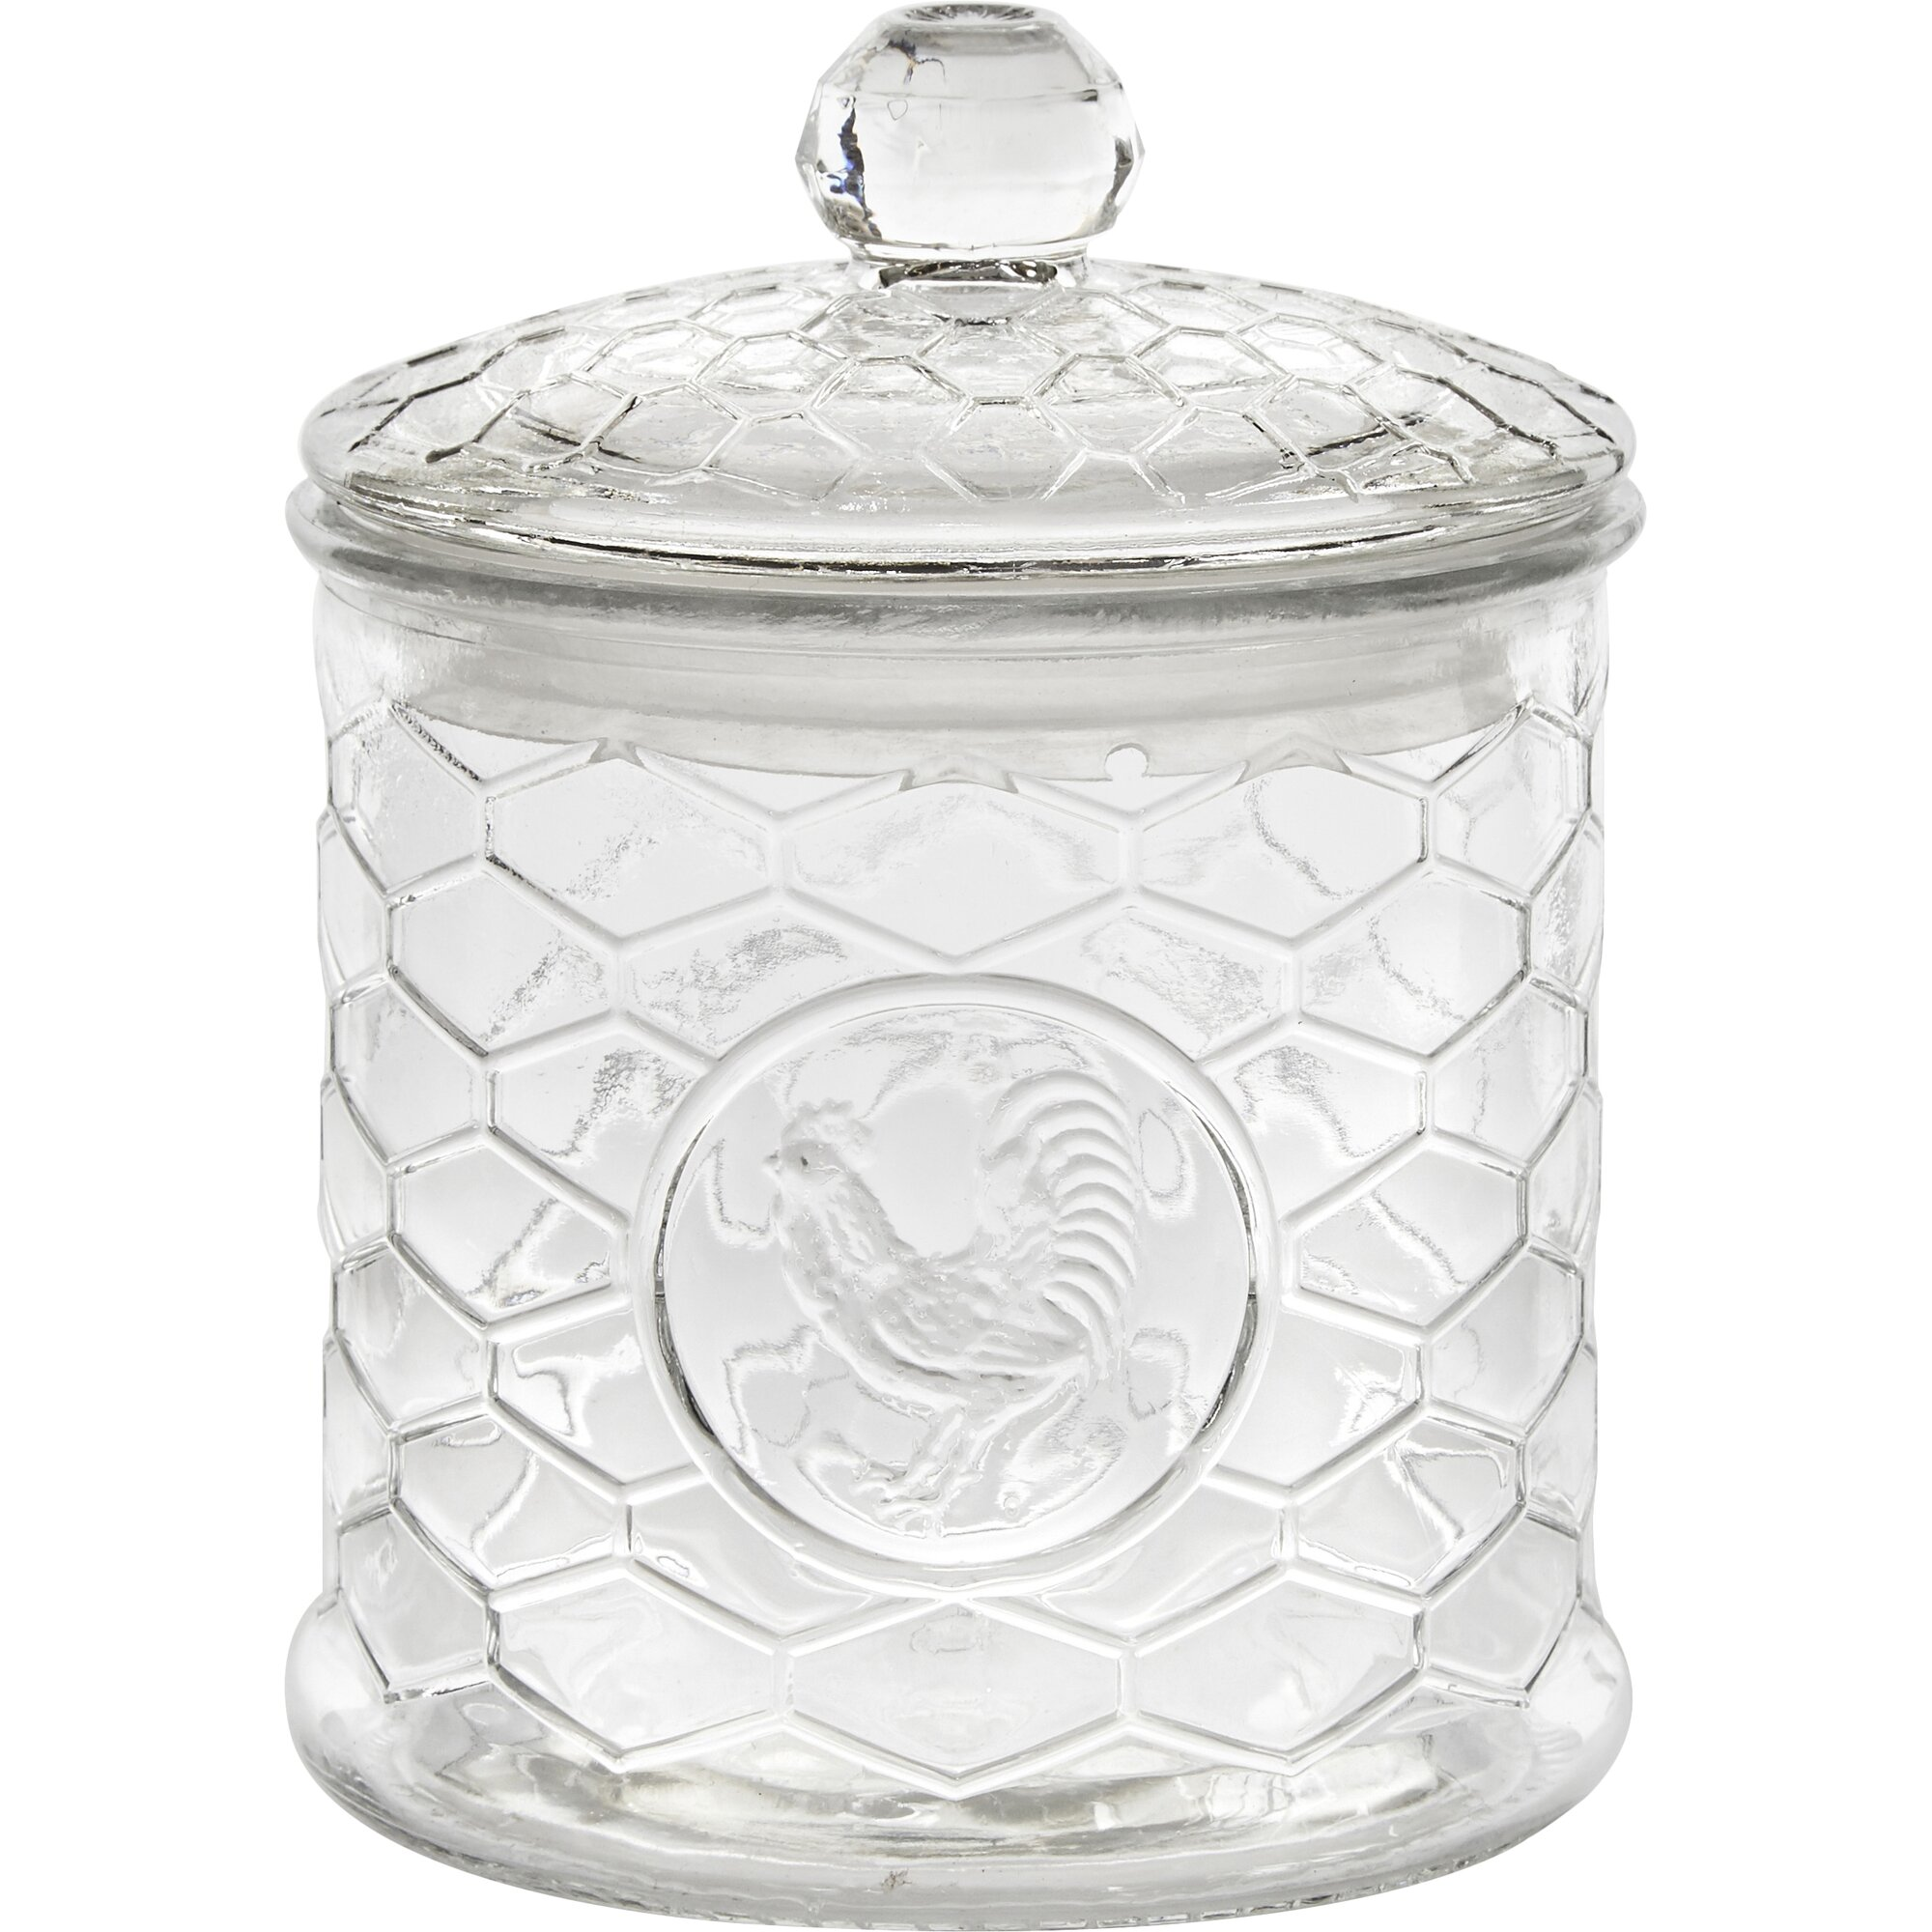 circle glass rooster design 3 piece kitchen canister set le rooster kitchen canister set